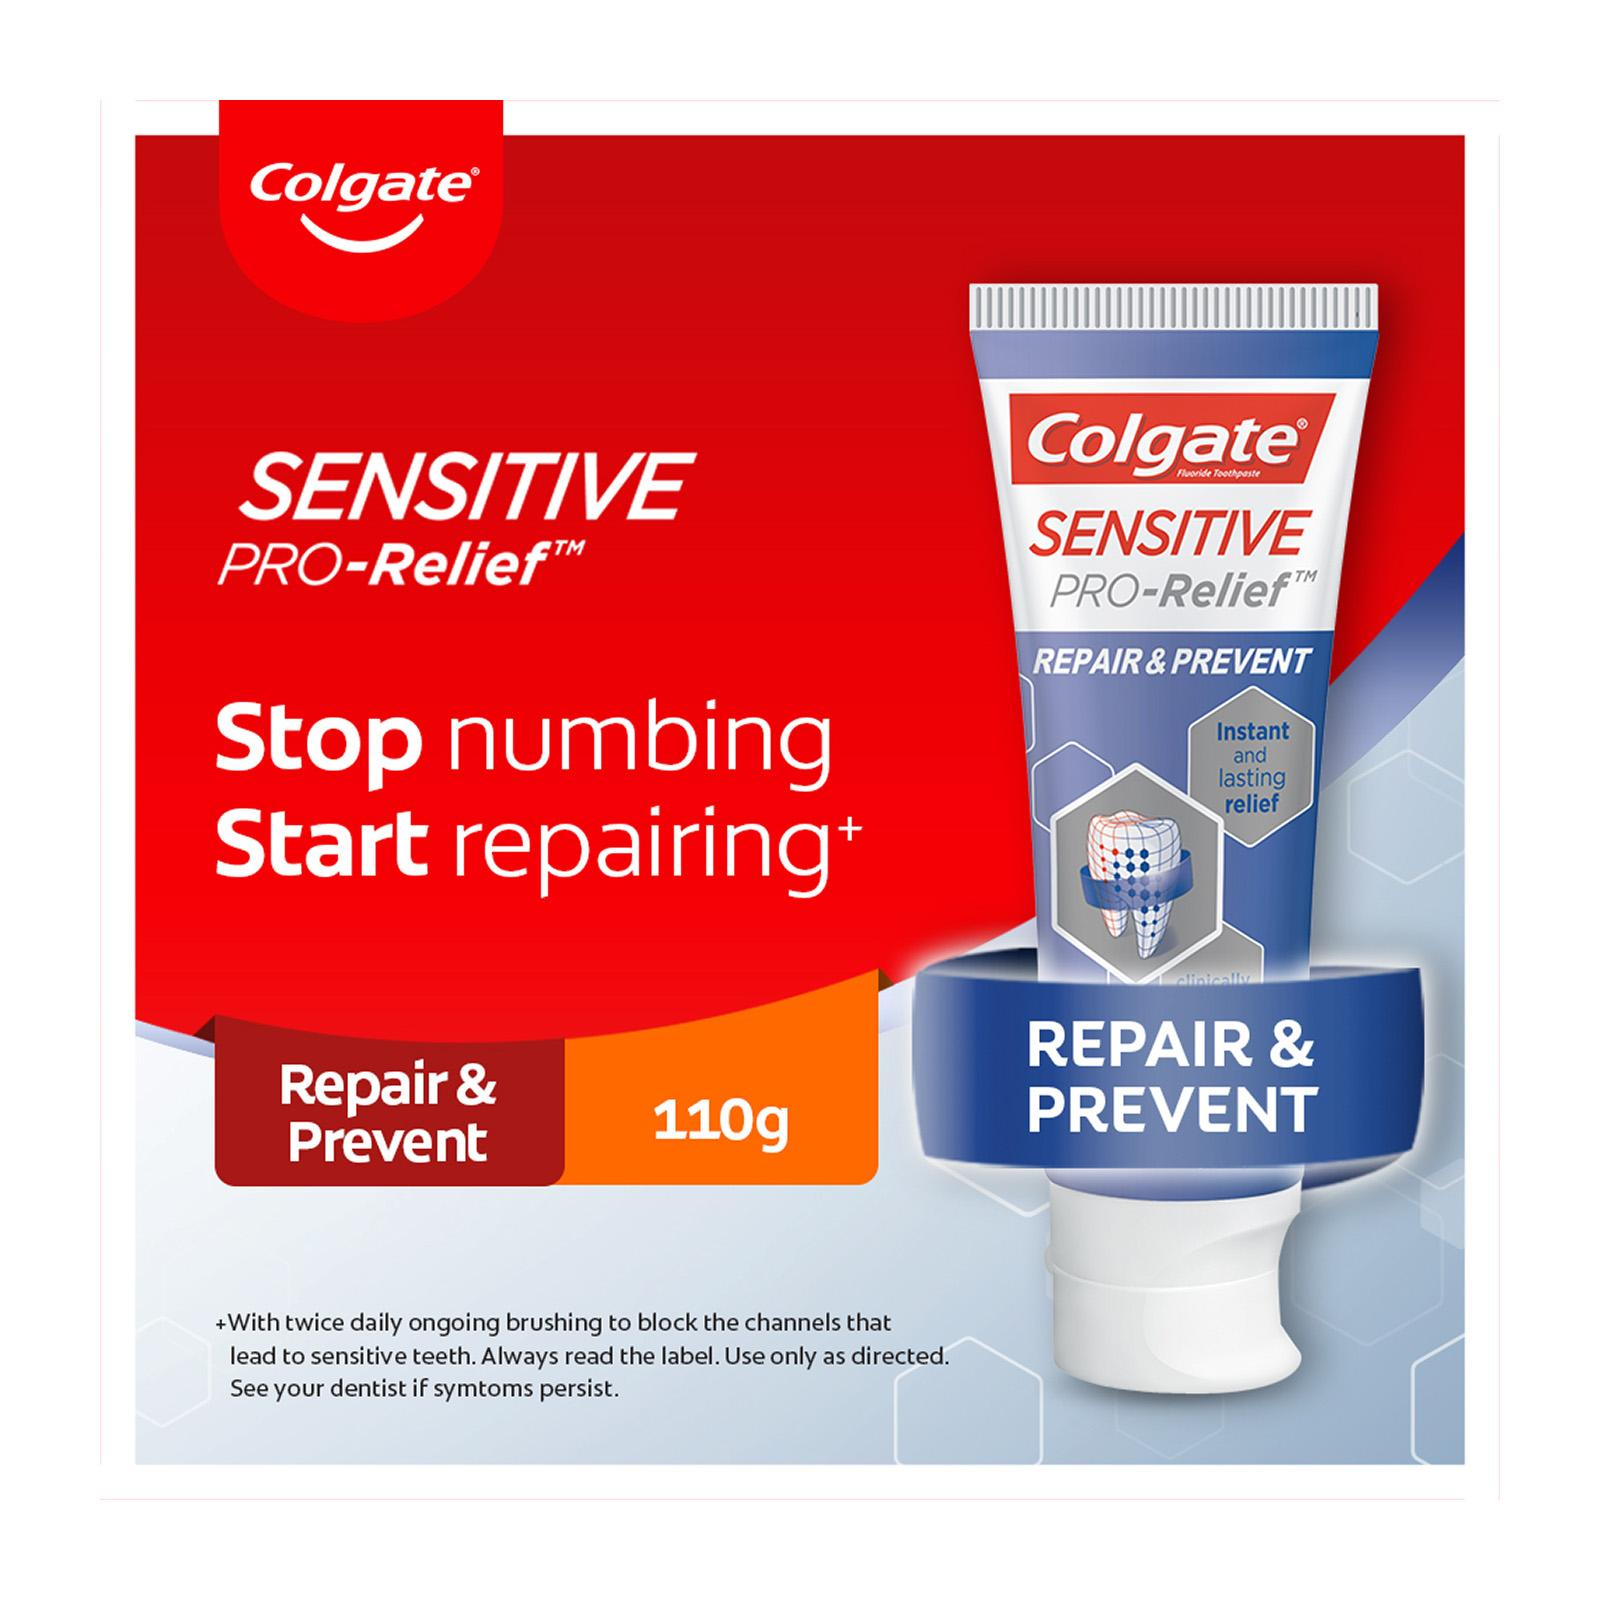 Colgate Sensitive Pro Relief Repair and Prevent Toothpaste 114g